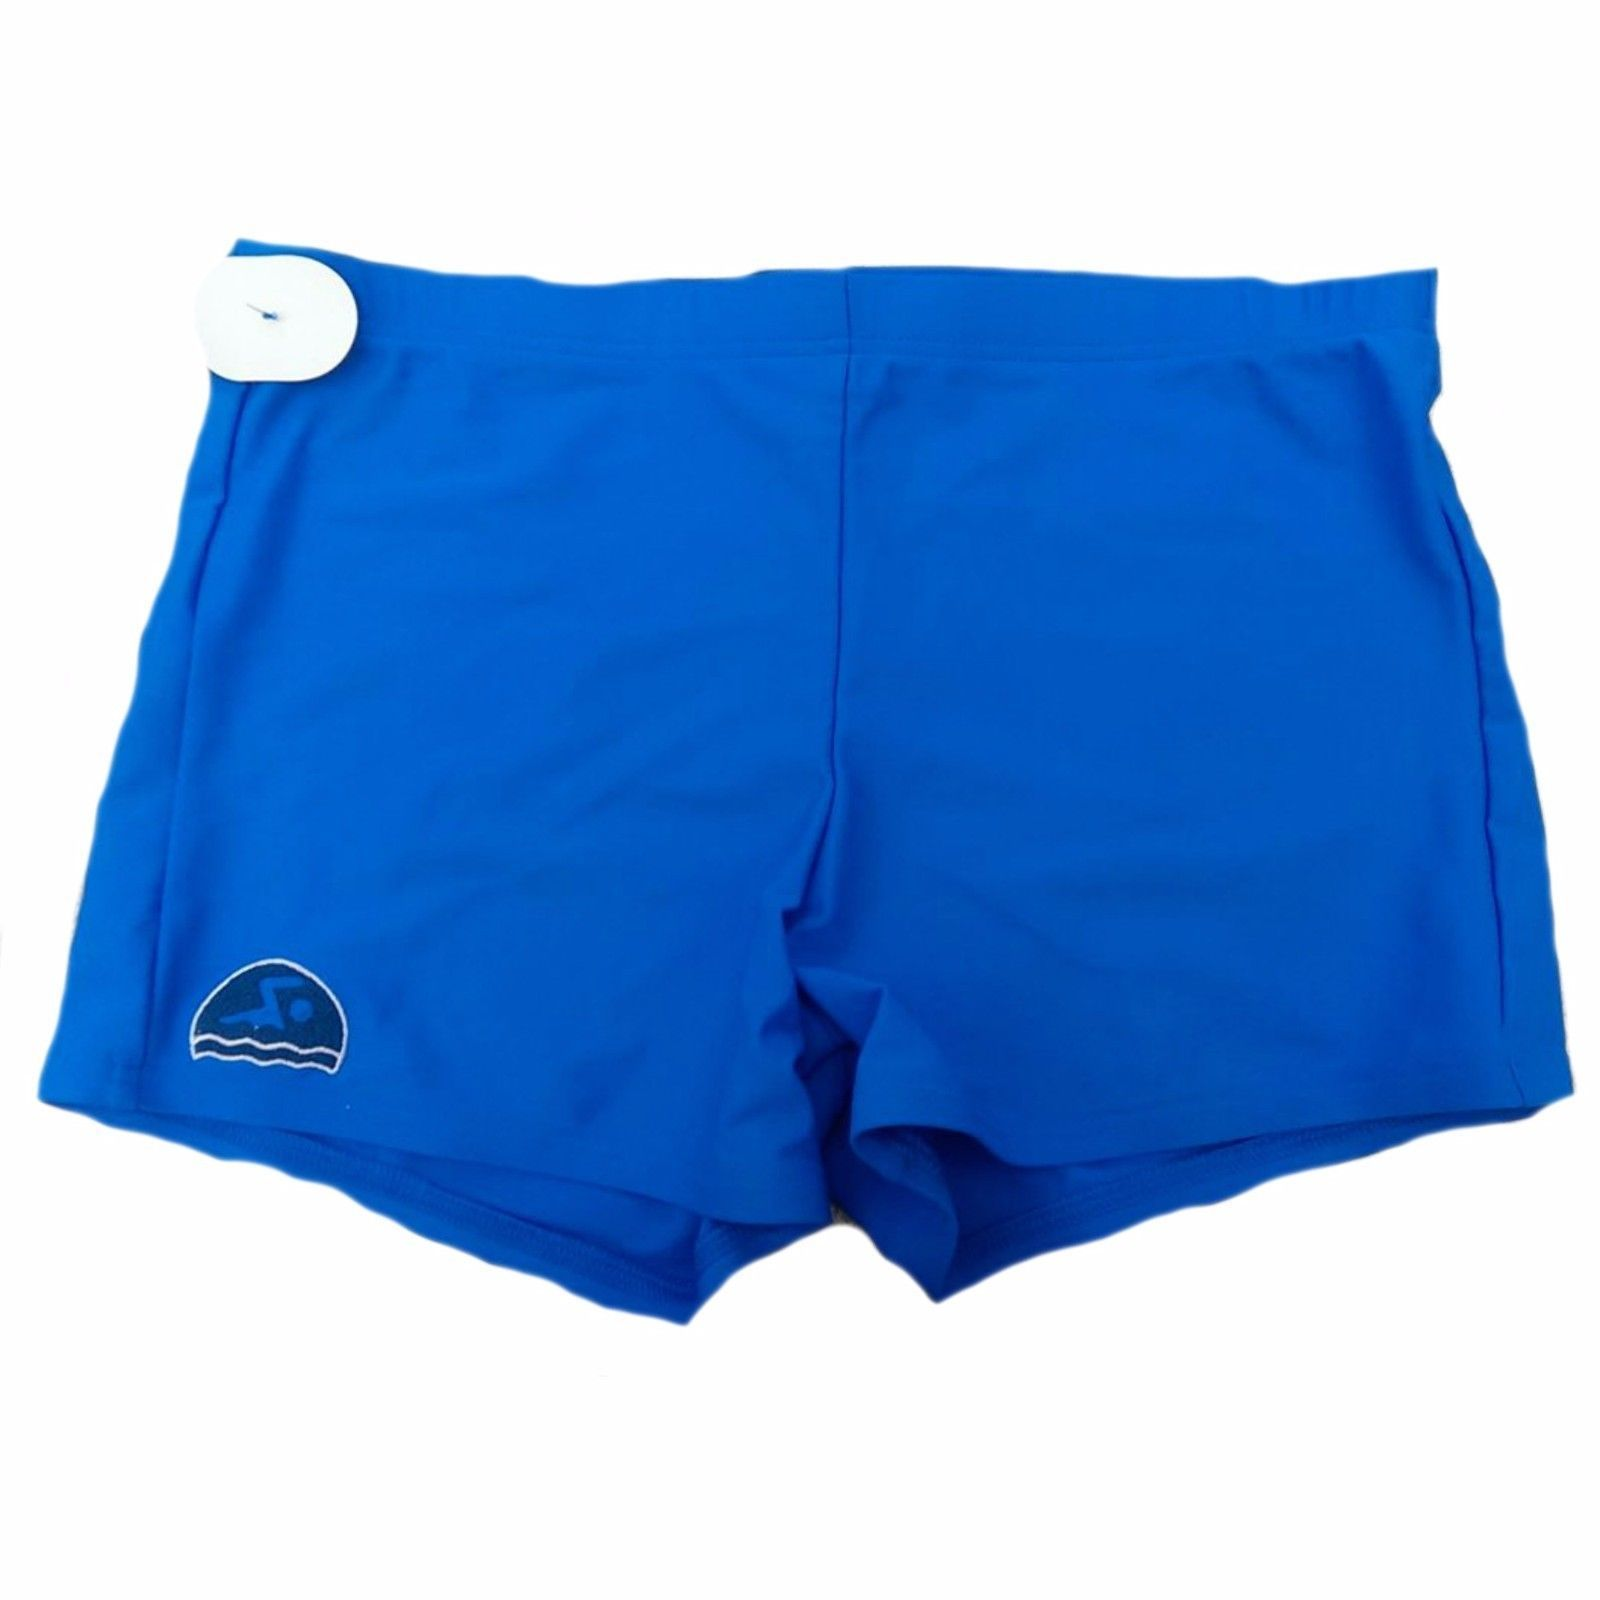 Gifts For Swimmers Uk Ideas